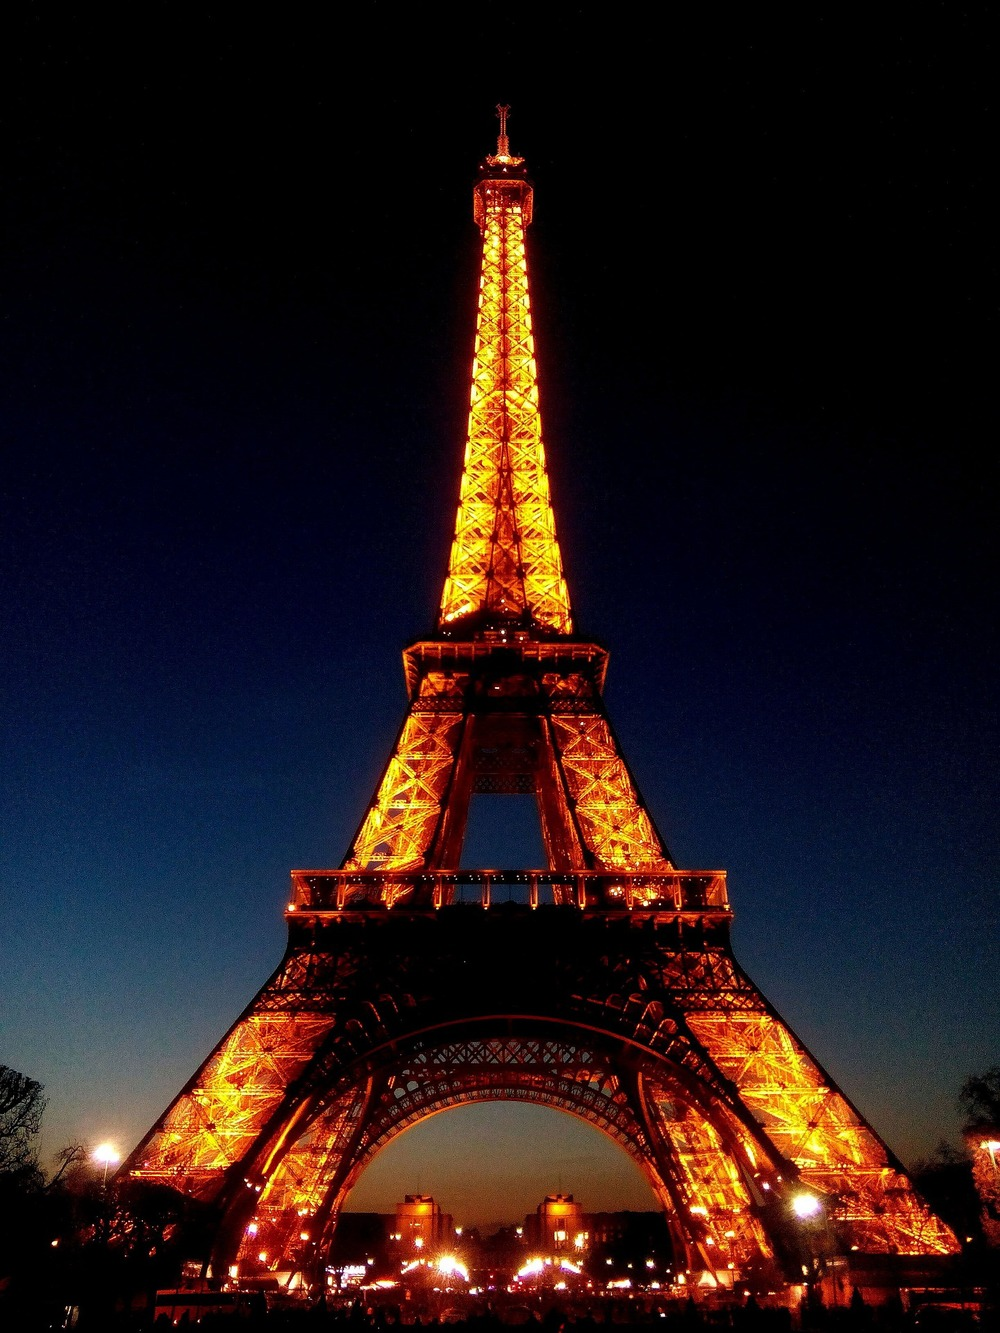 paris at night -CC0 Public Domain.jpg